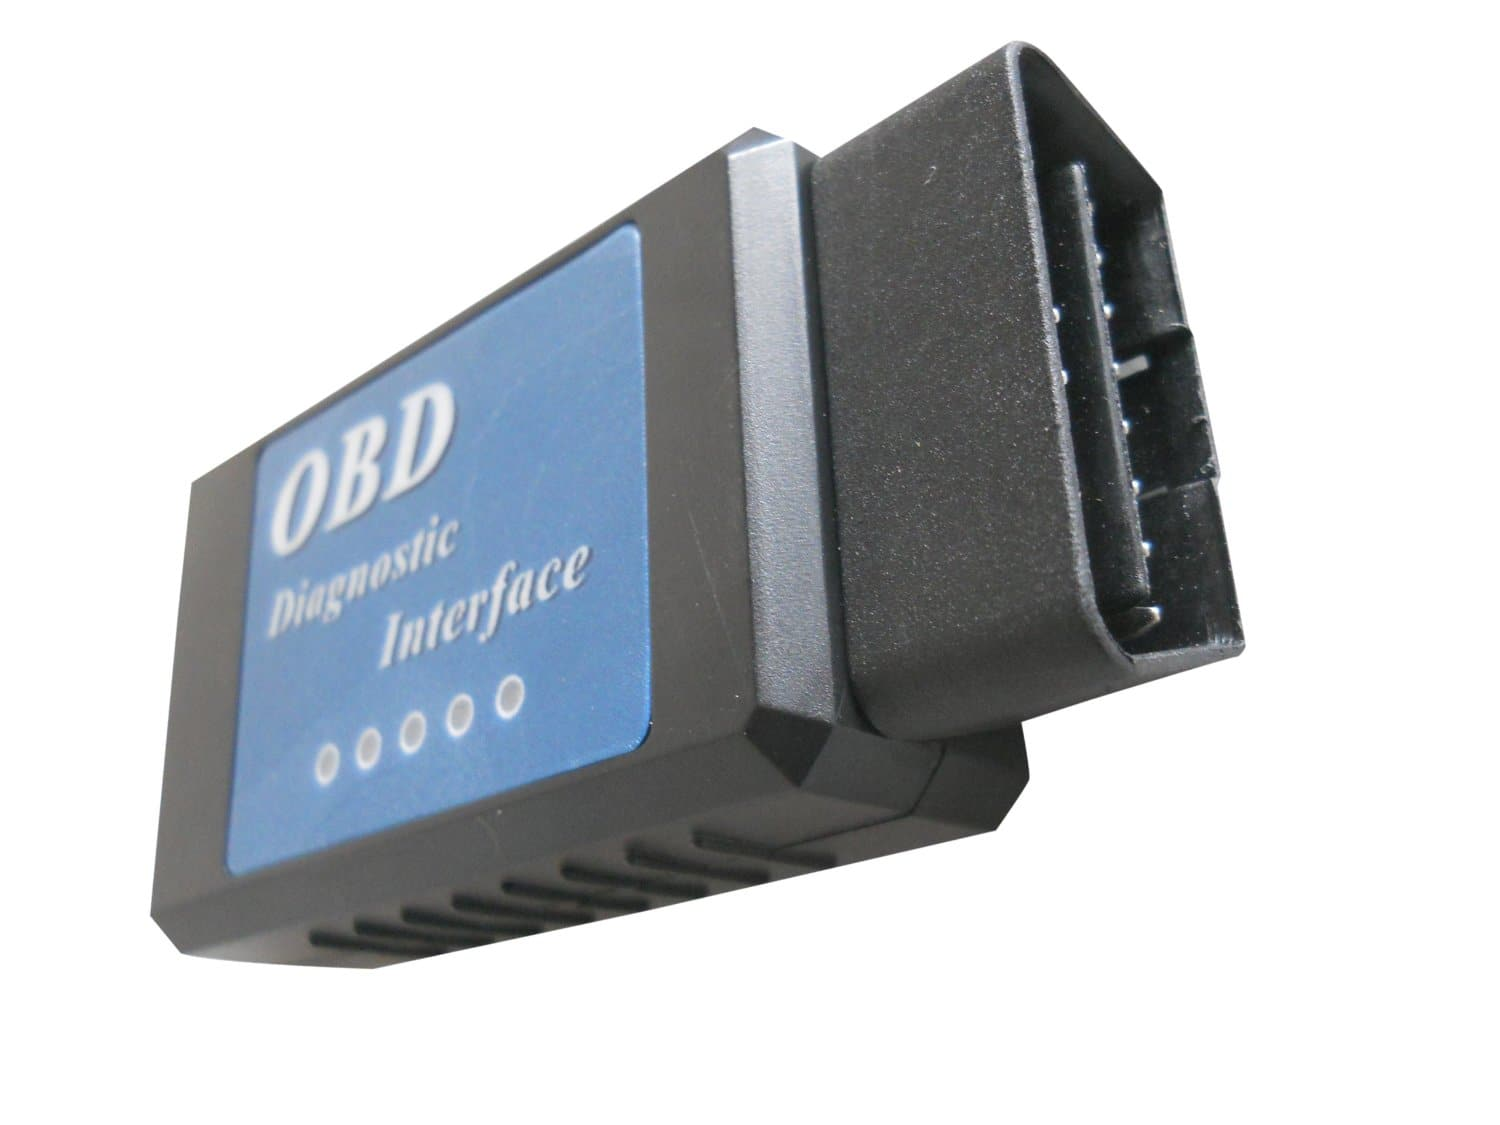 BAFX Products - Bluetooth OBD2 scan tool - For check engine light & diagnostics $15.25 amazon